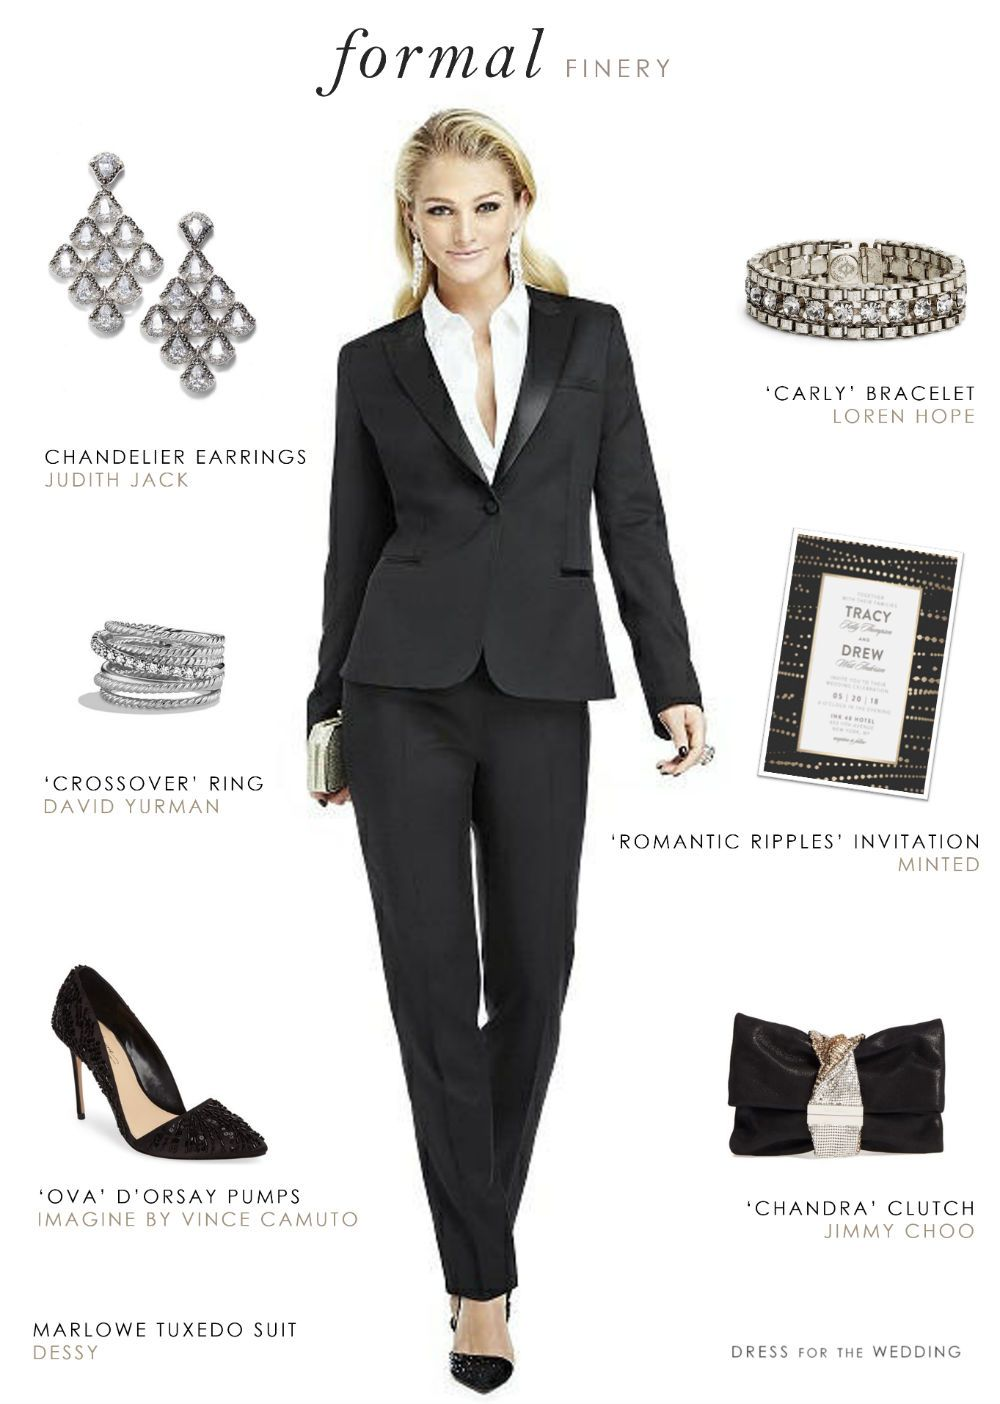 Womenus tuxedo for a wedding or black tie event capsule wardrobe